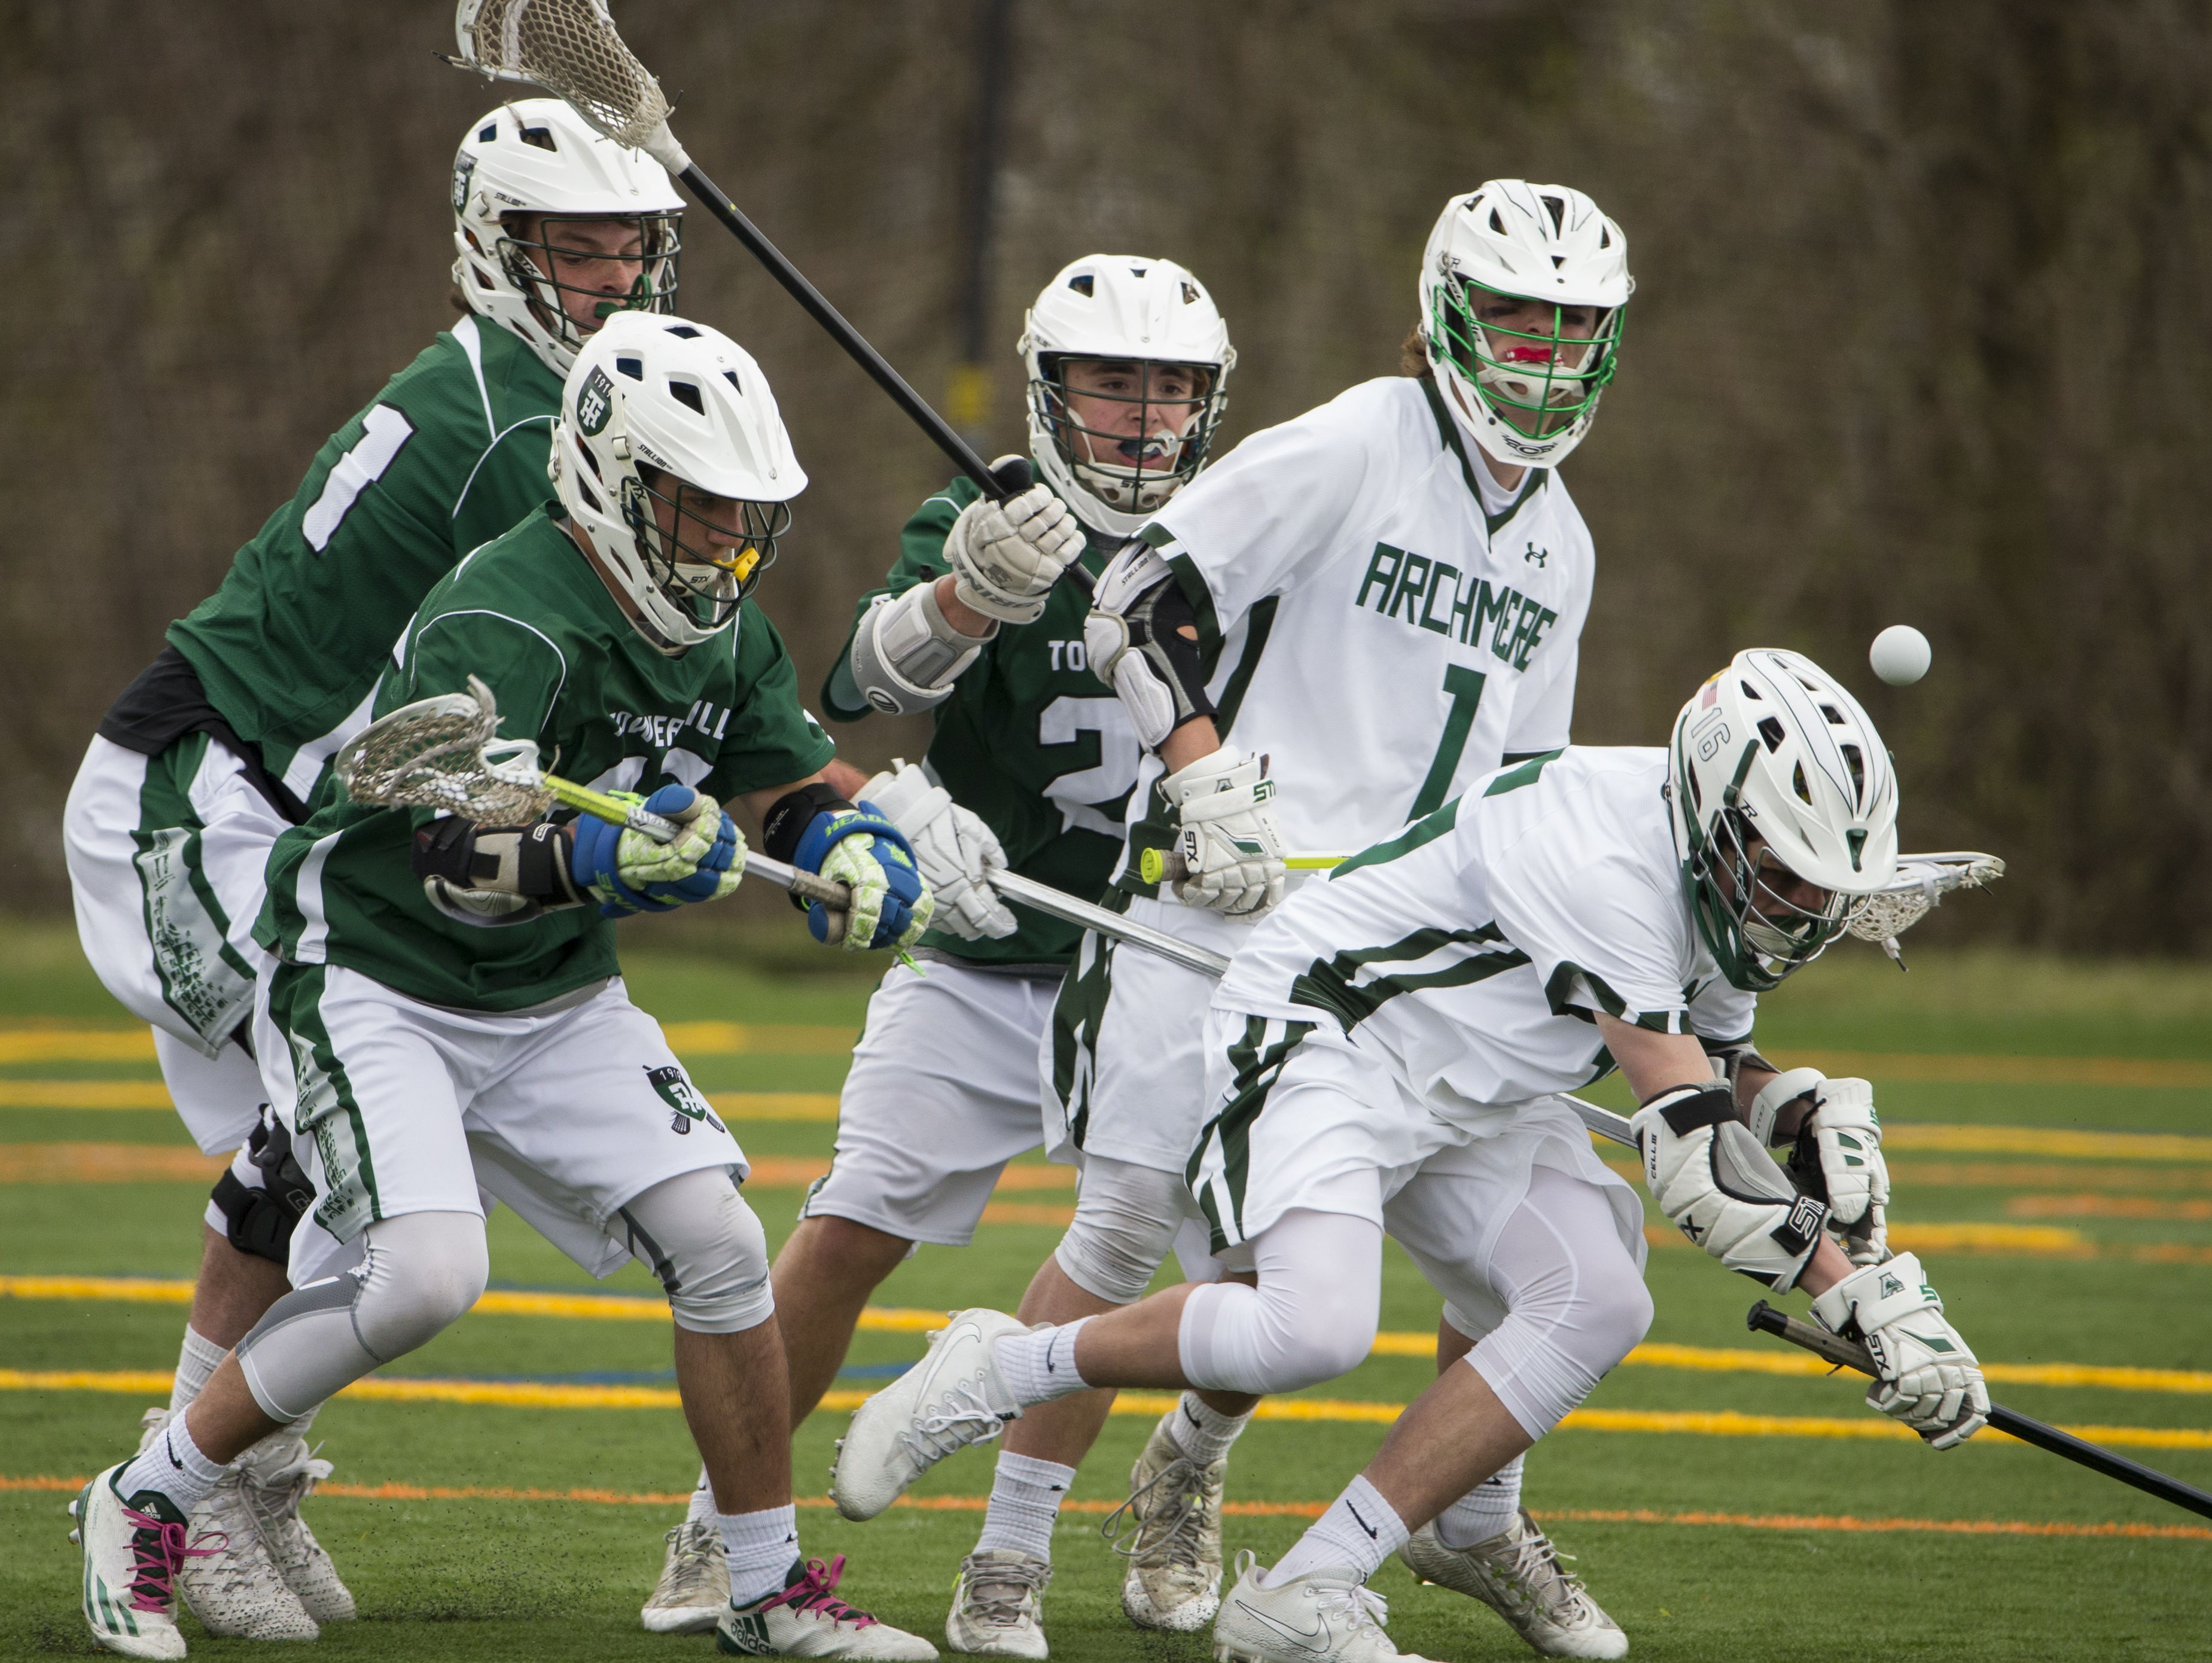 Archmere's Nolan Collins (right) runs into traffic in front of the Tower net in the second half of Archmere's 12-7 win Saturday.